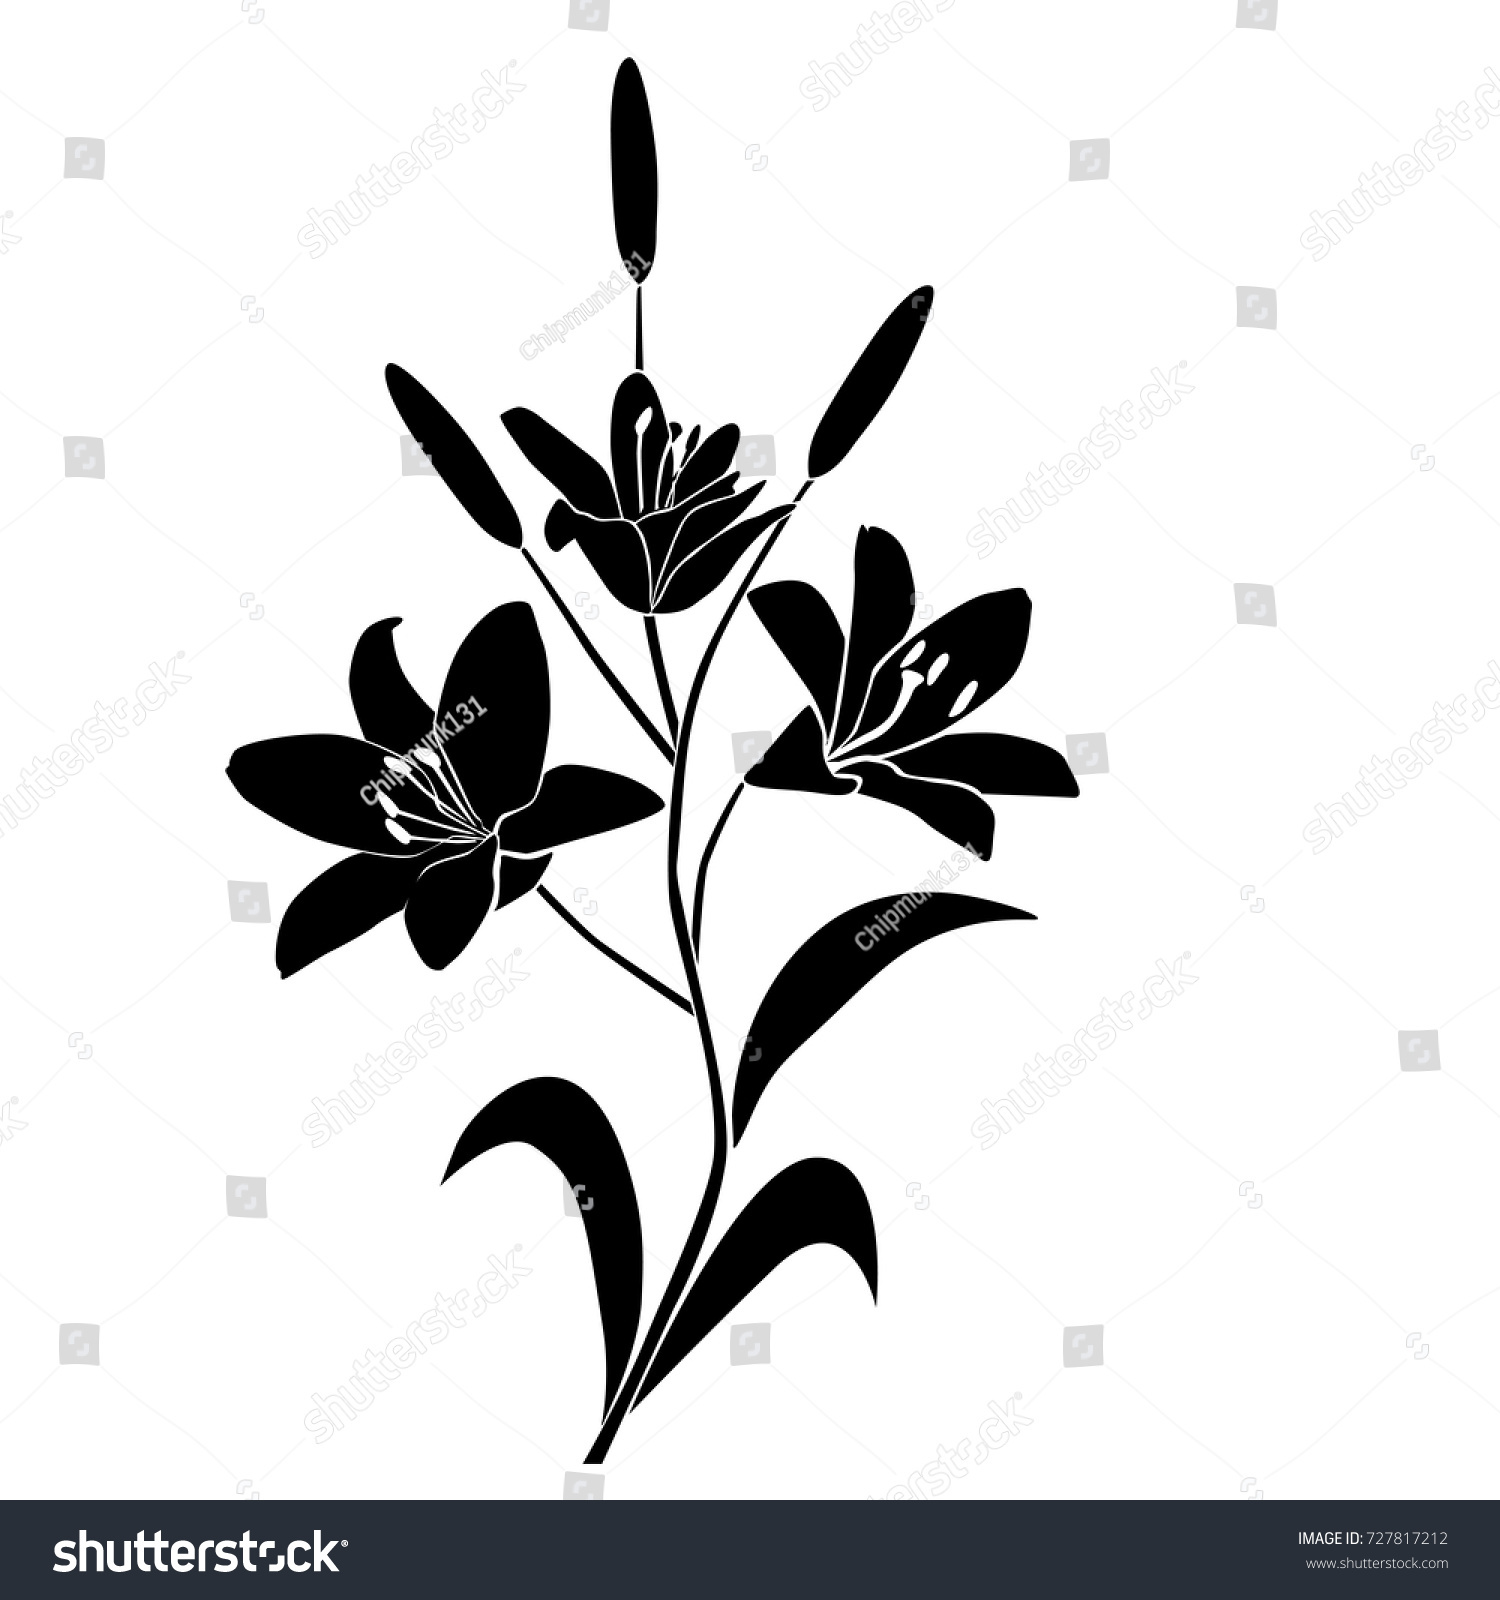 Silhouette lily flower blossom branch black stock vector 727817212 silhouette of lily flower blossom branch black color isolated on white background izmirmasajfo Choice Image